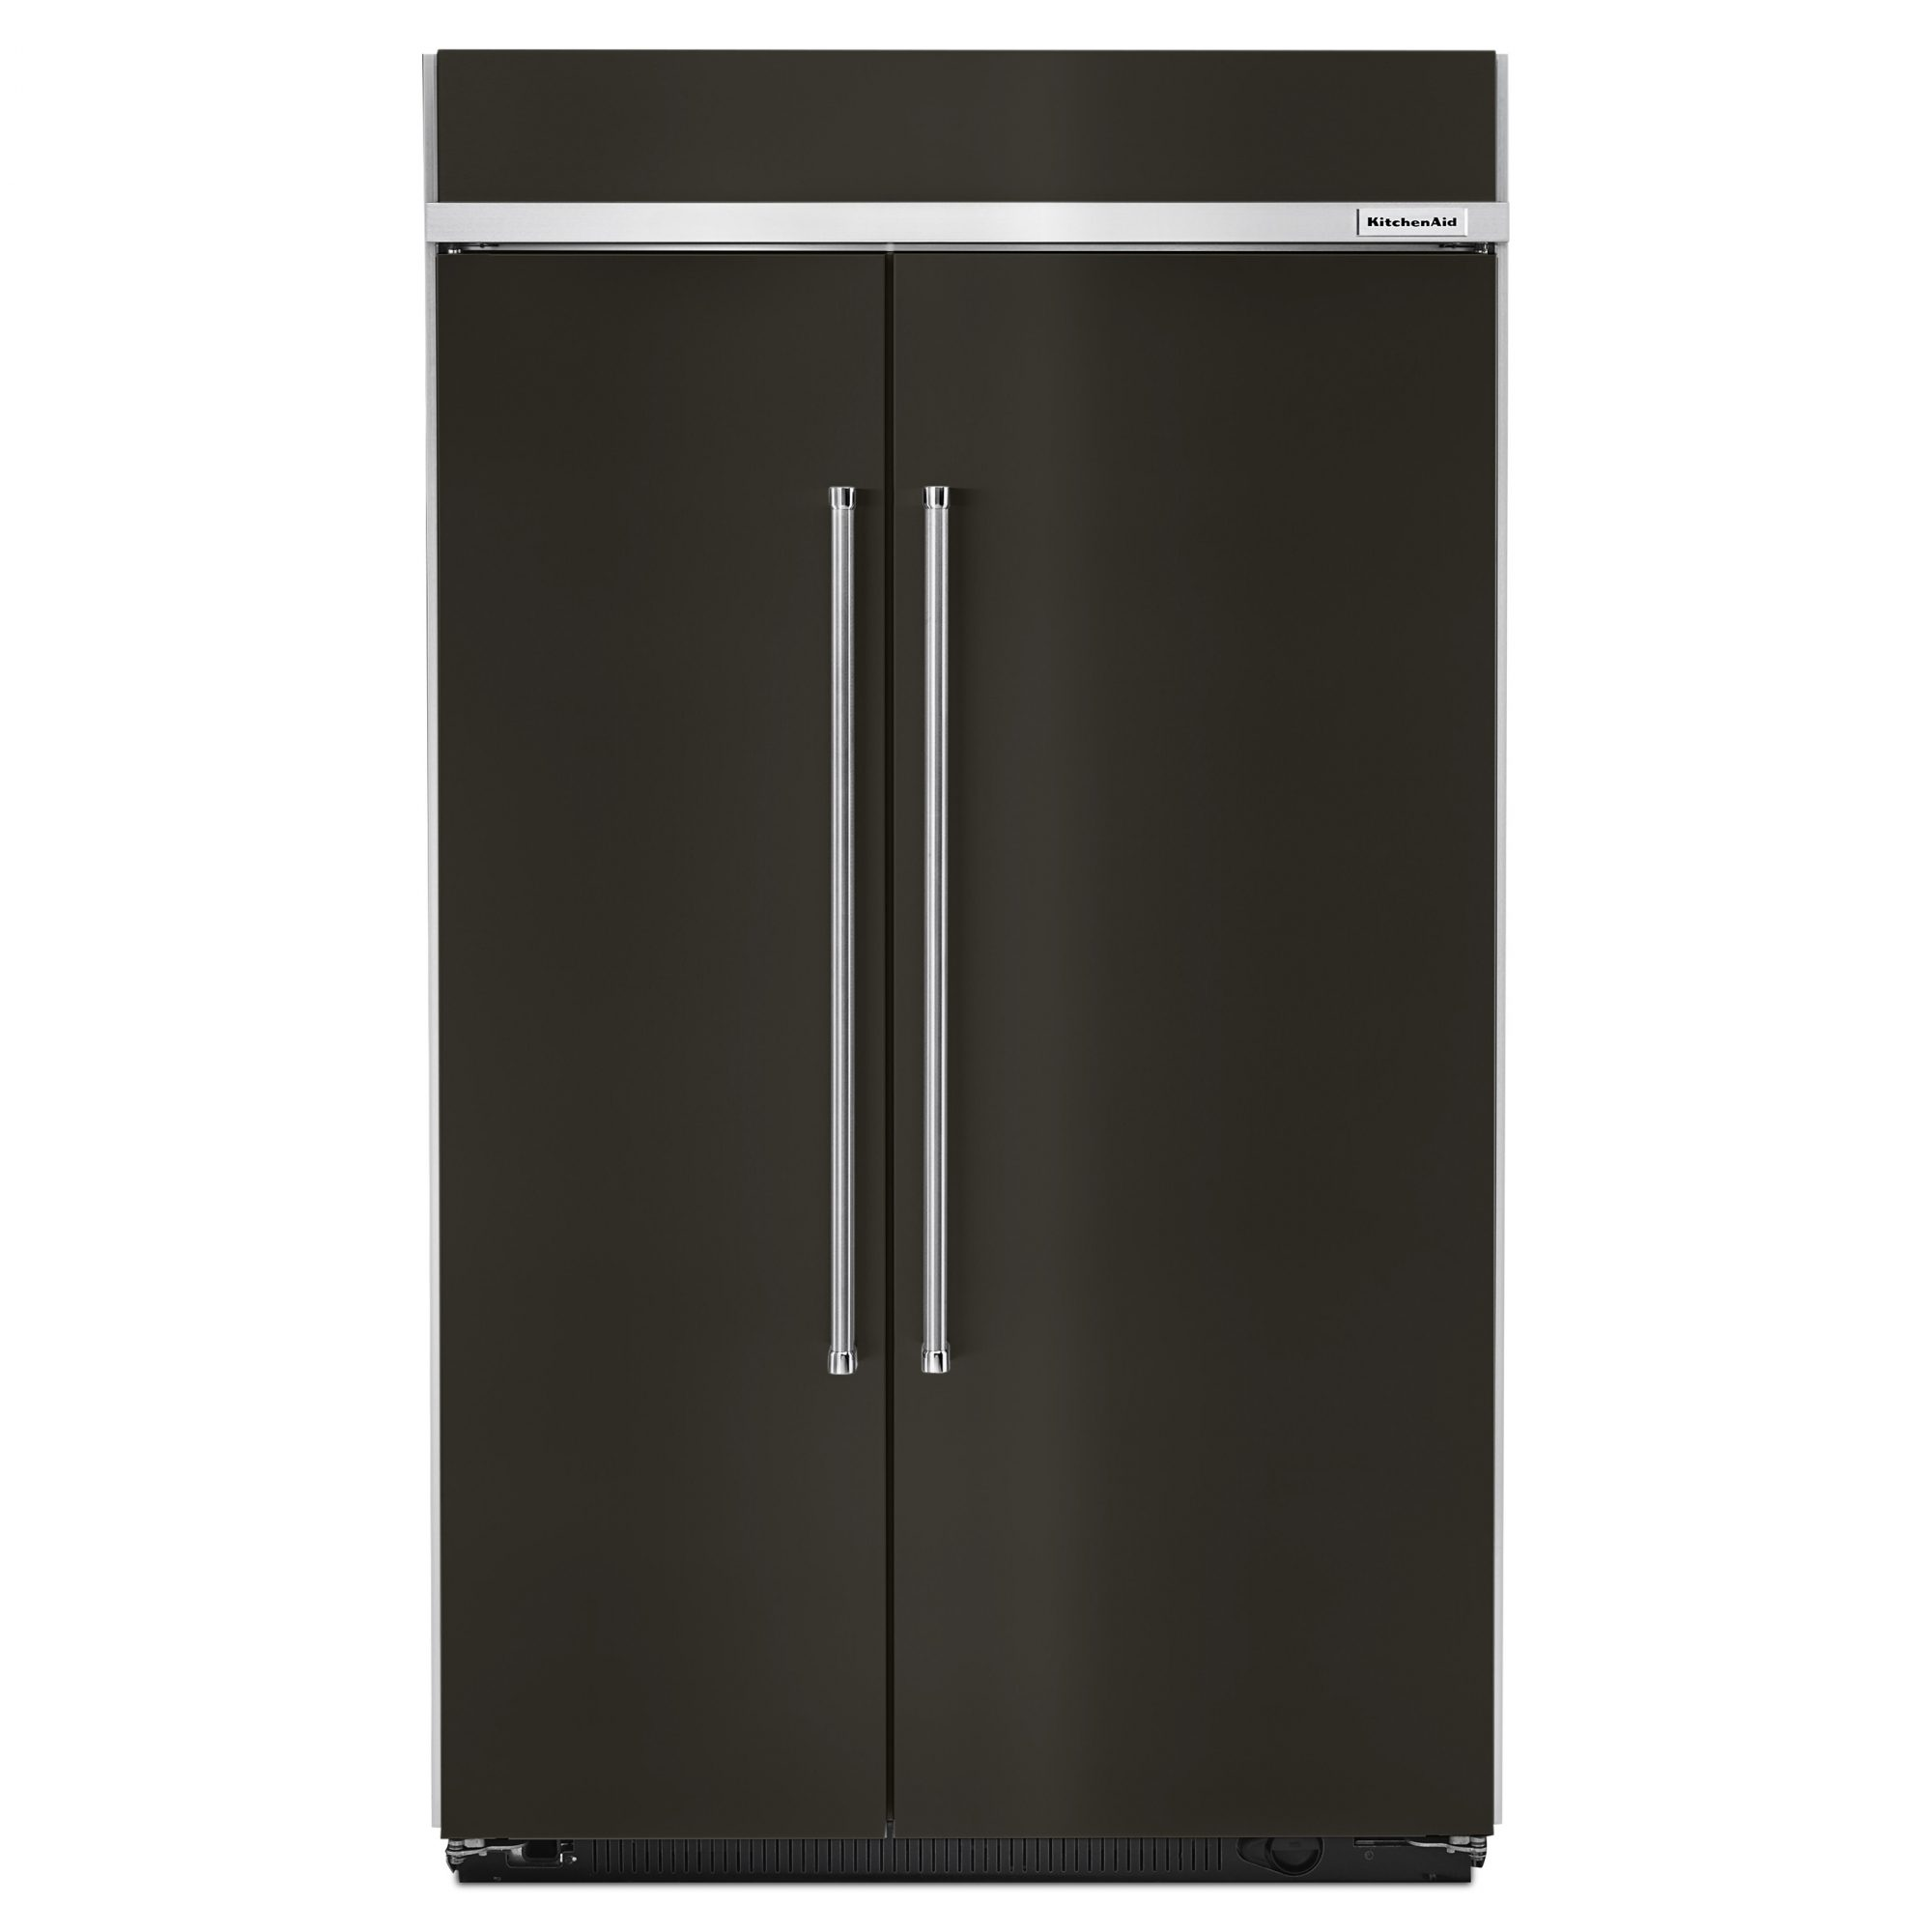 Kitchenaid's matte black refrigerator